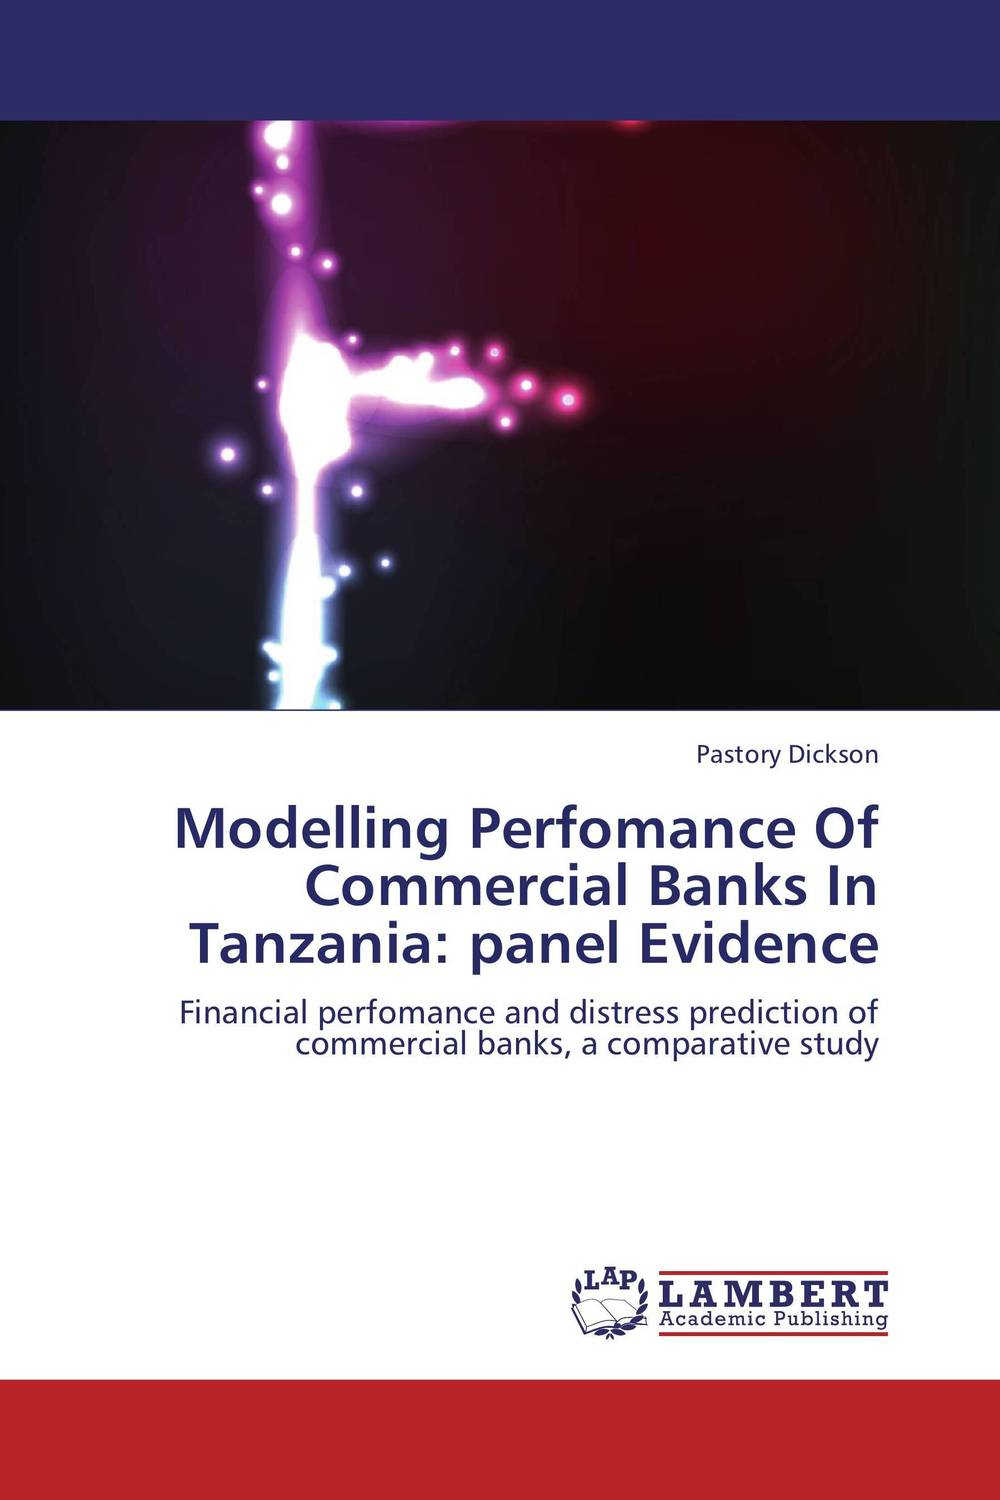 Modelling Perfomance Of Commercial Banks In Tanzania: panel Evidence edith hotchkiss corporate financial distress and bankruptcy predict and avoid bankruptcy analyze and invest in distressed debt